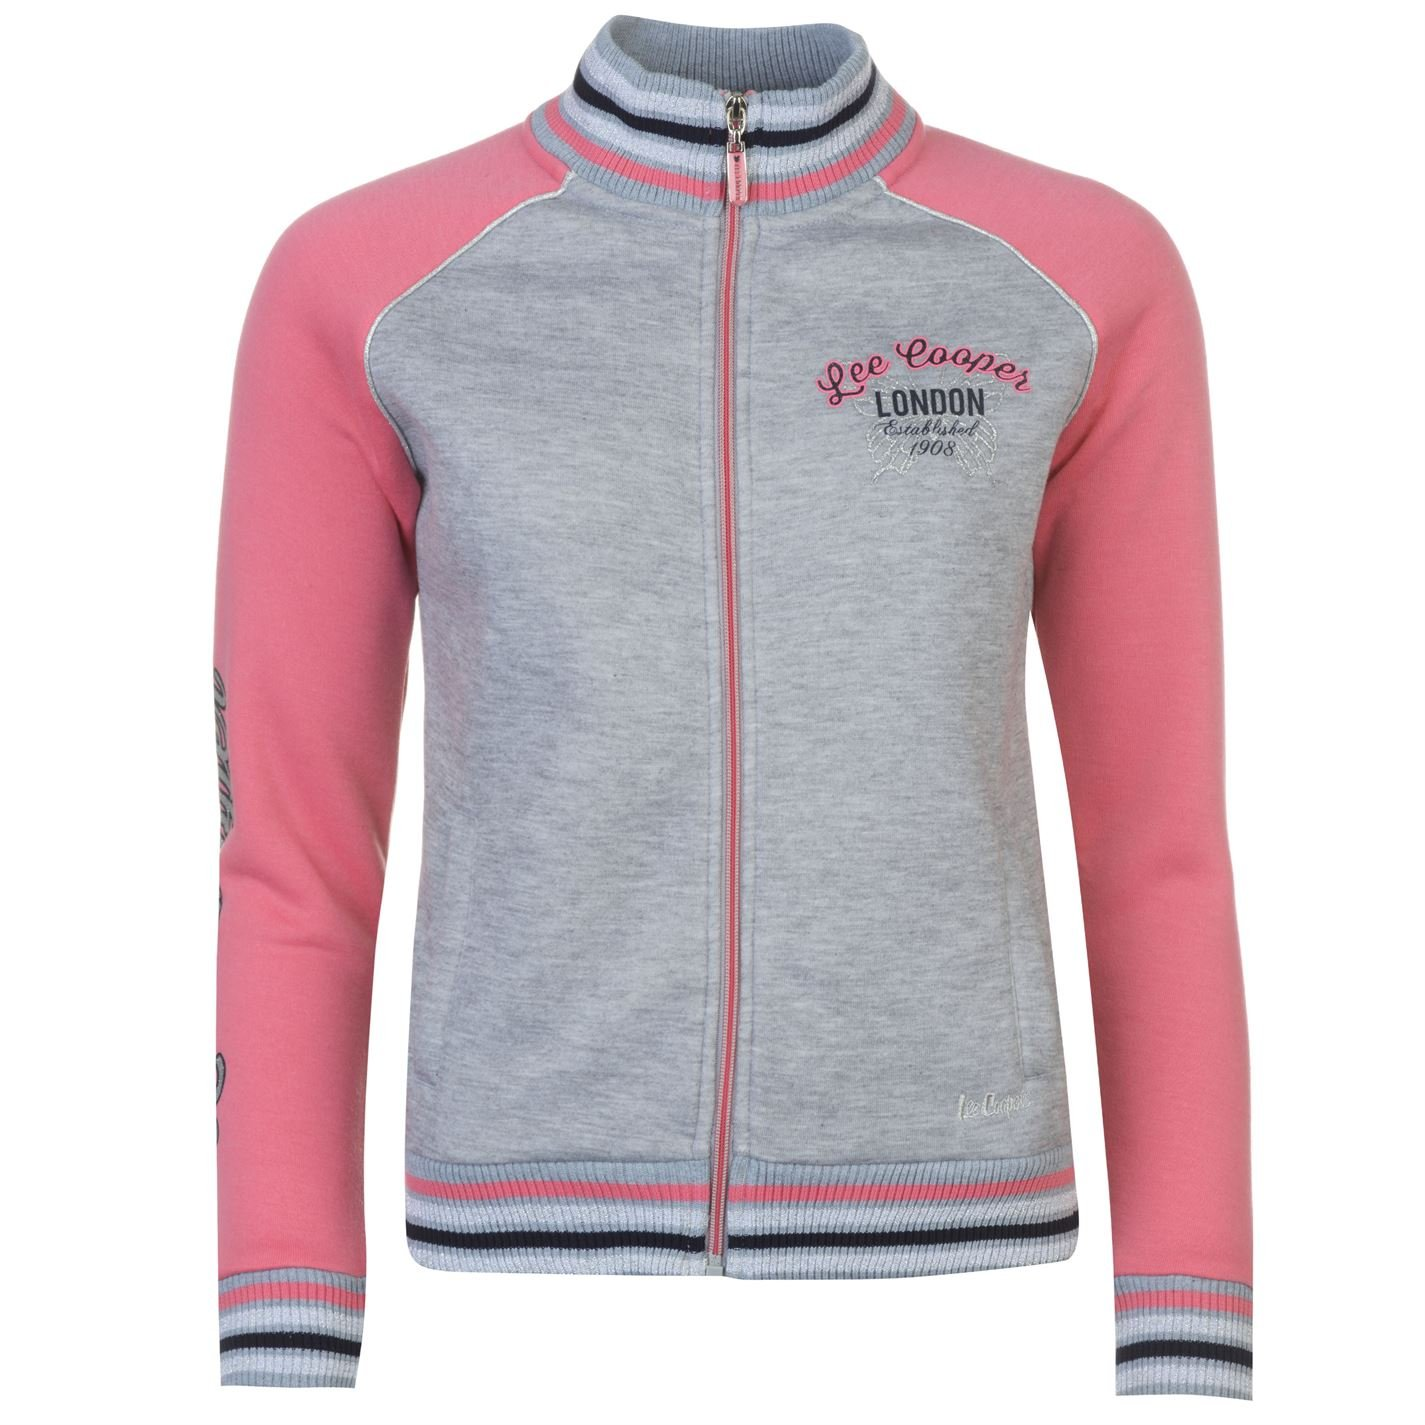 Lee Cooper Womens Glitzy Zipped Jacket Full Zip Sweater Coat Top Jumper Pullover Grey M/Pink 10 (S)